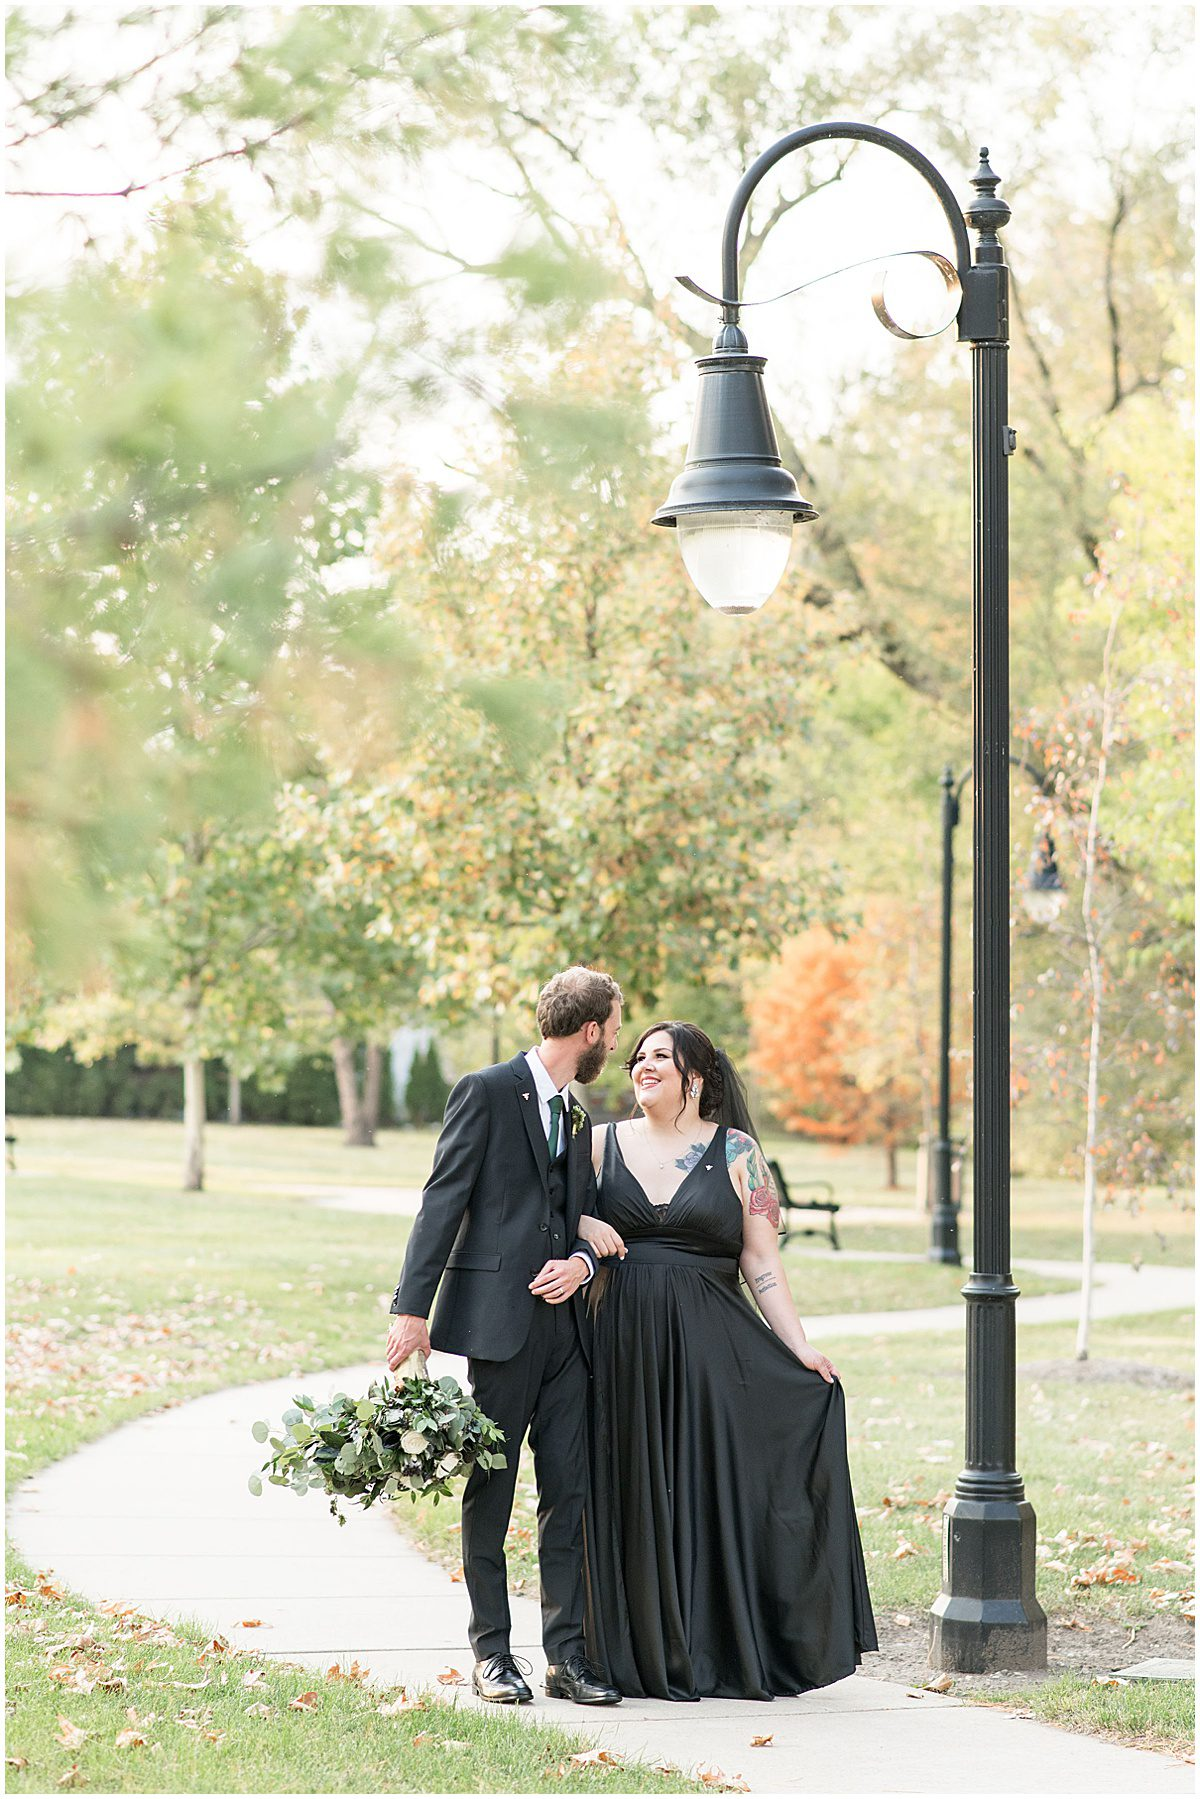 Just married photos after eMbers Venue wedding in Rensselaer, Indiana with a bride wearing black by Victoria Rayburn Photography